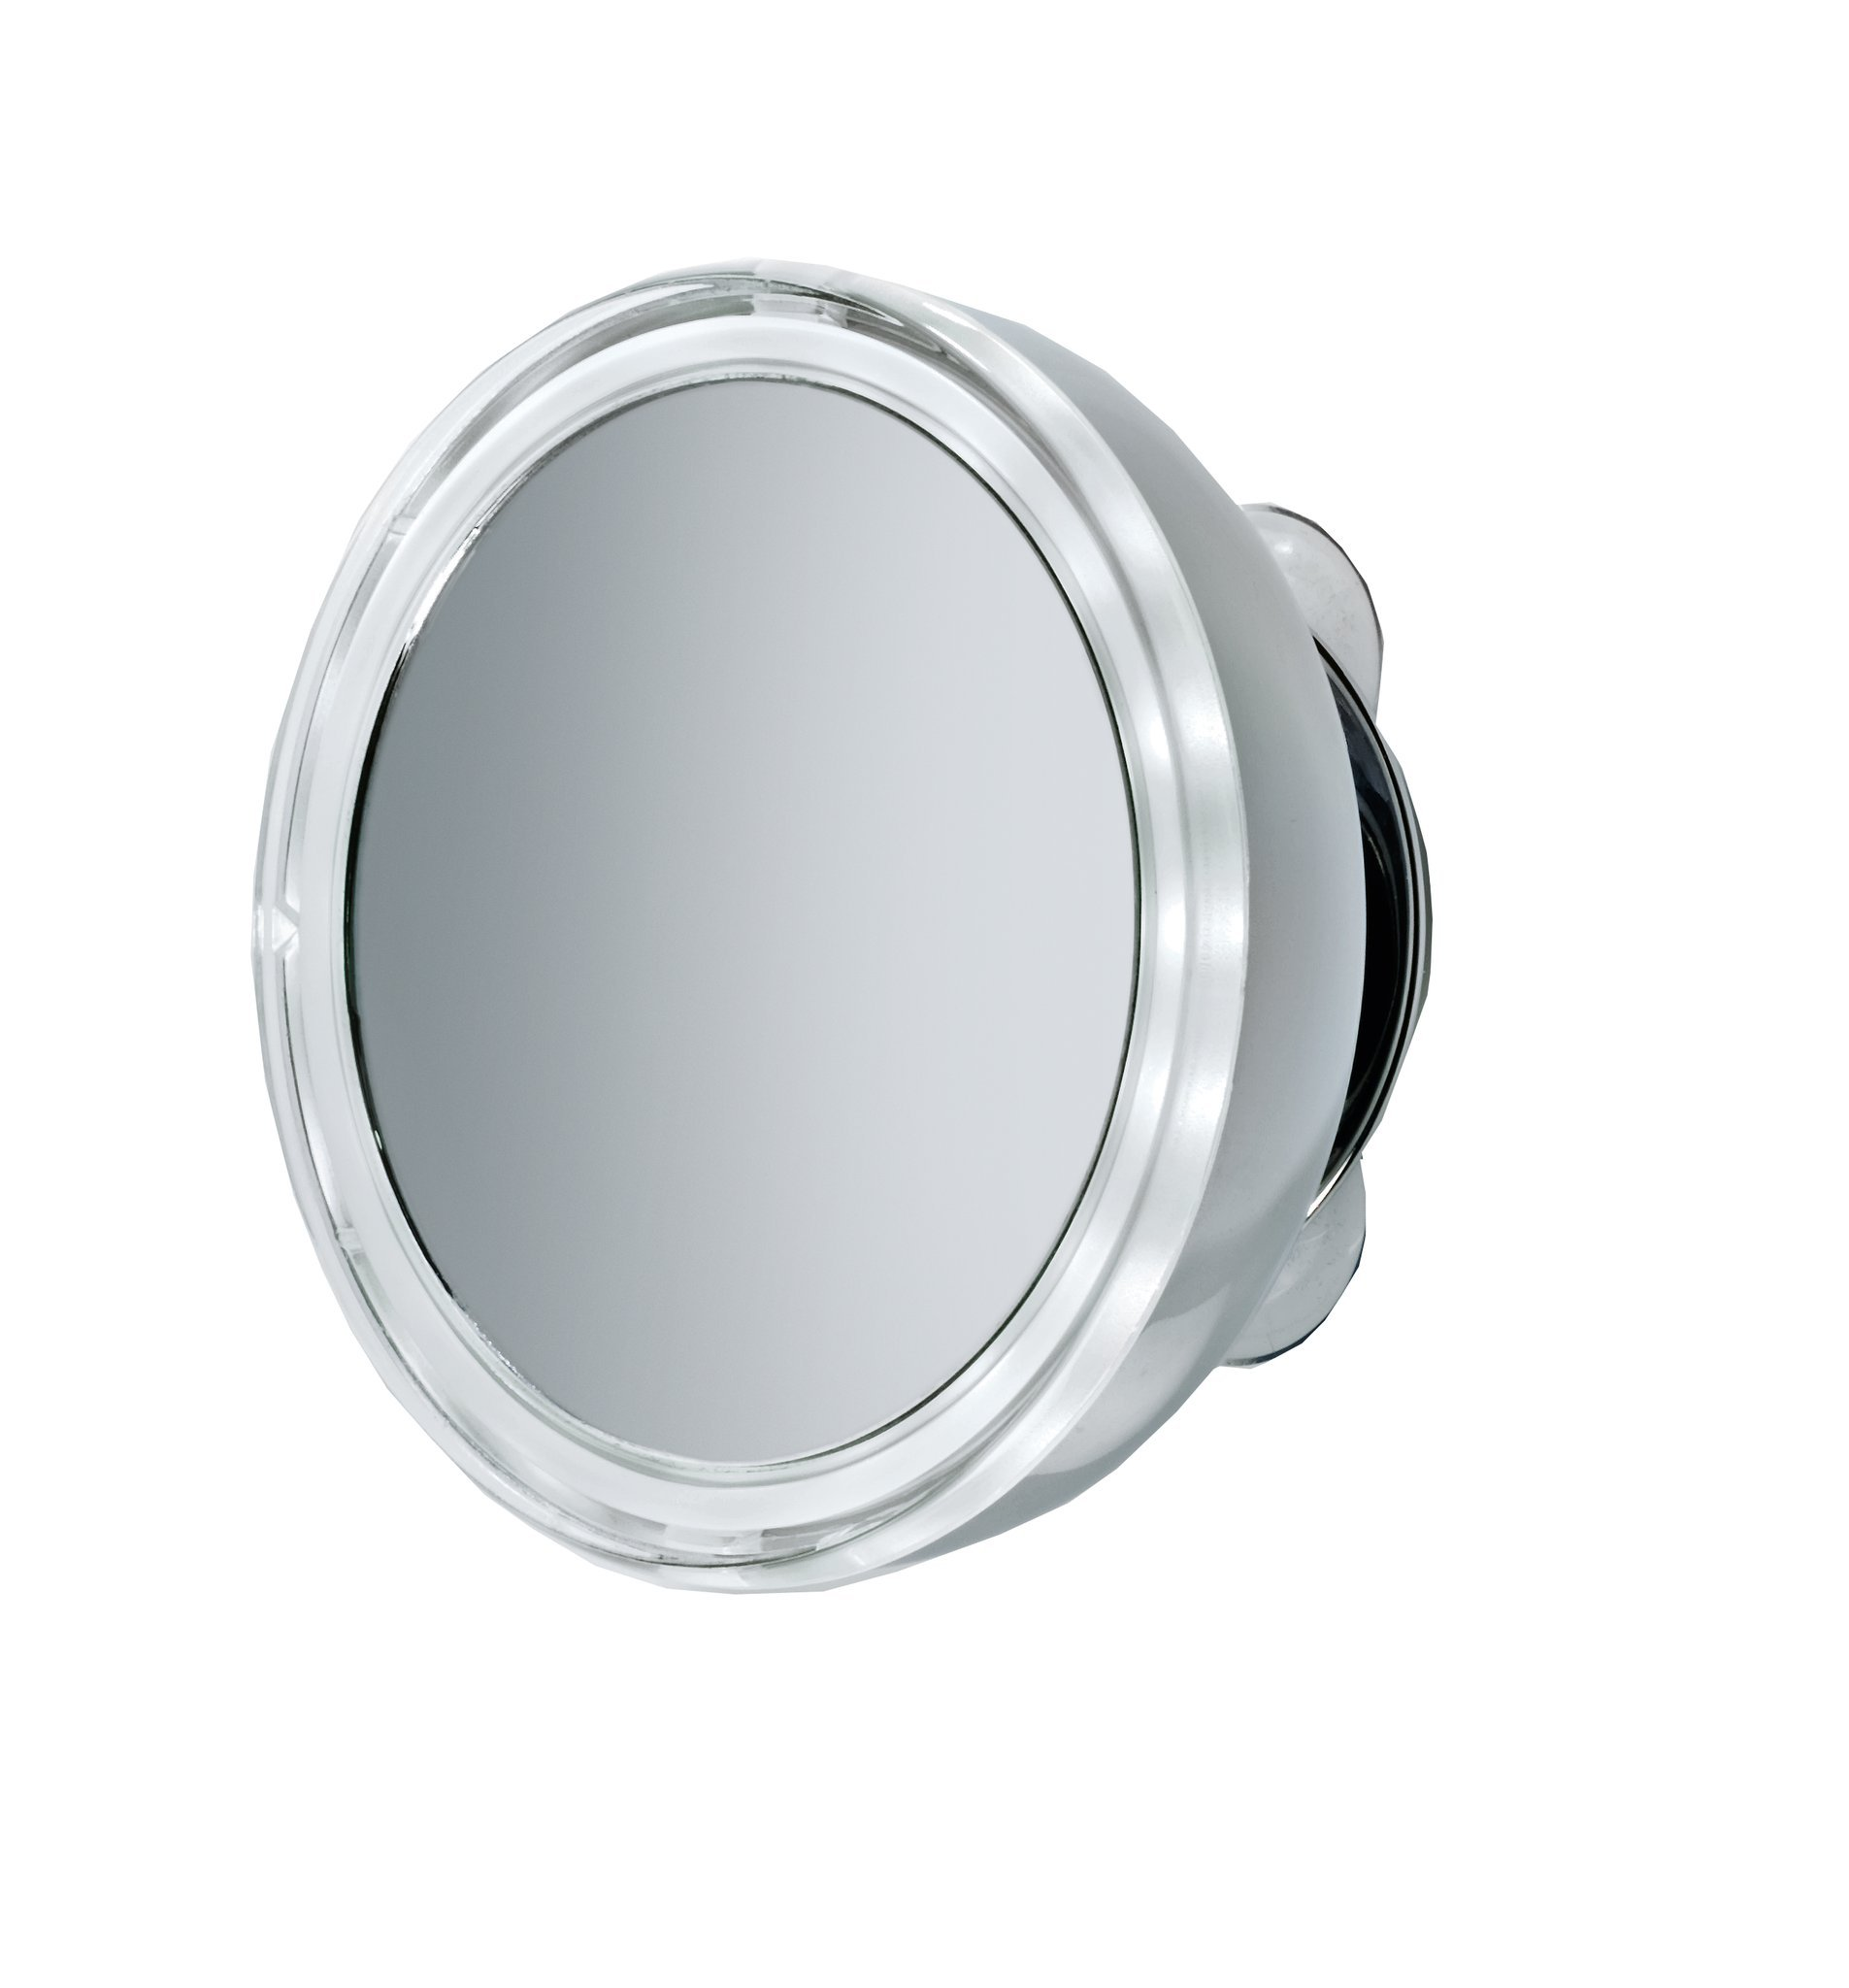 DWBA 5'' Round Suction cup 5x Cosmetic Makeup Magnifying LED light Mirror, Chrome